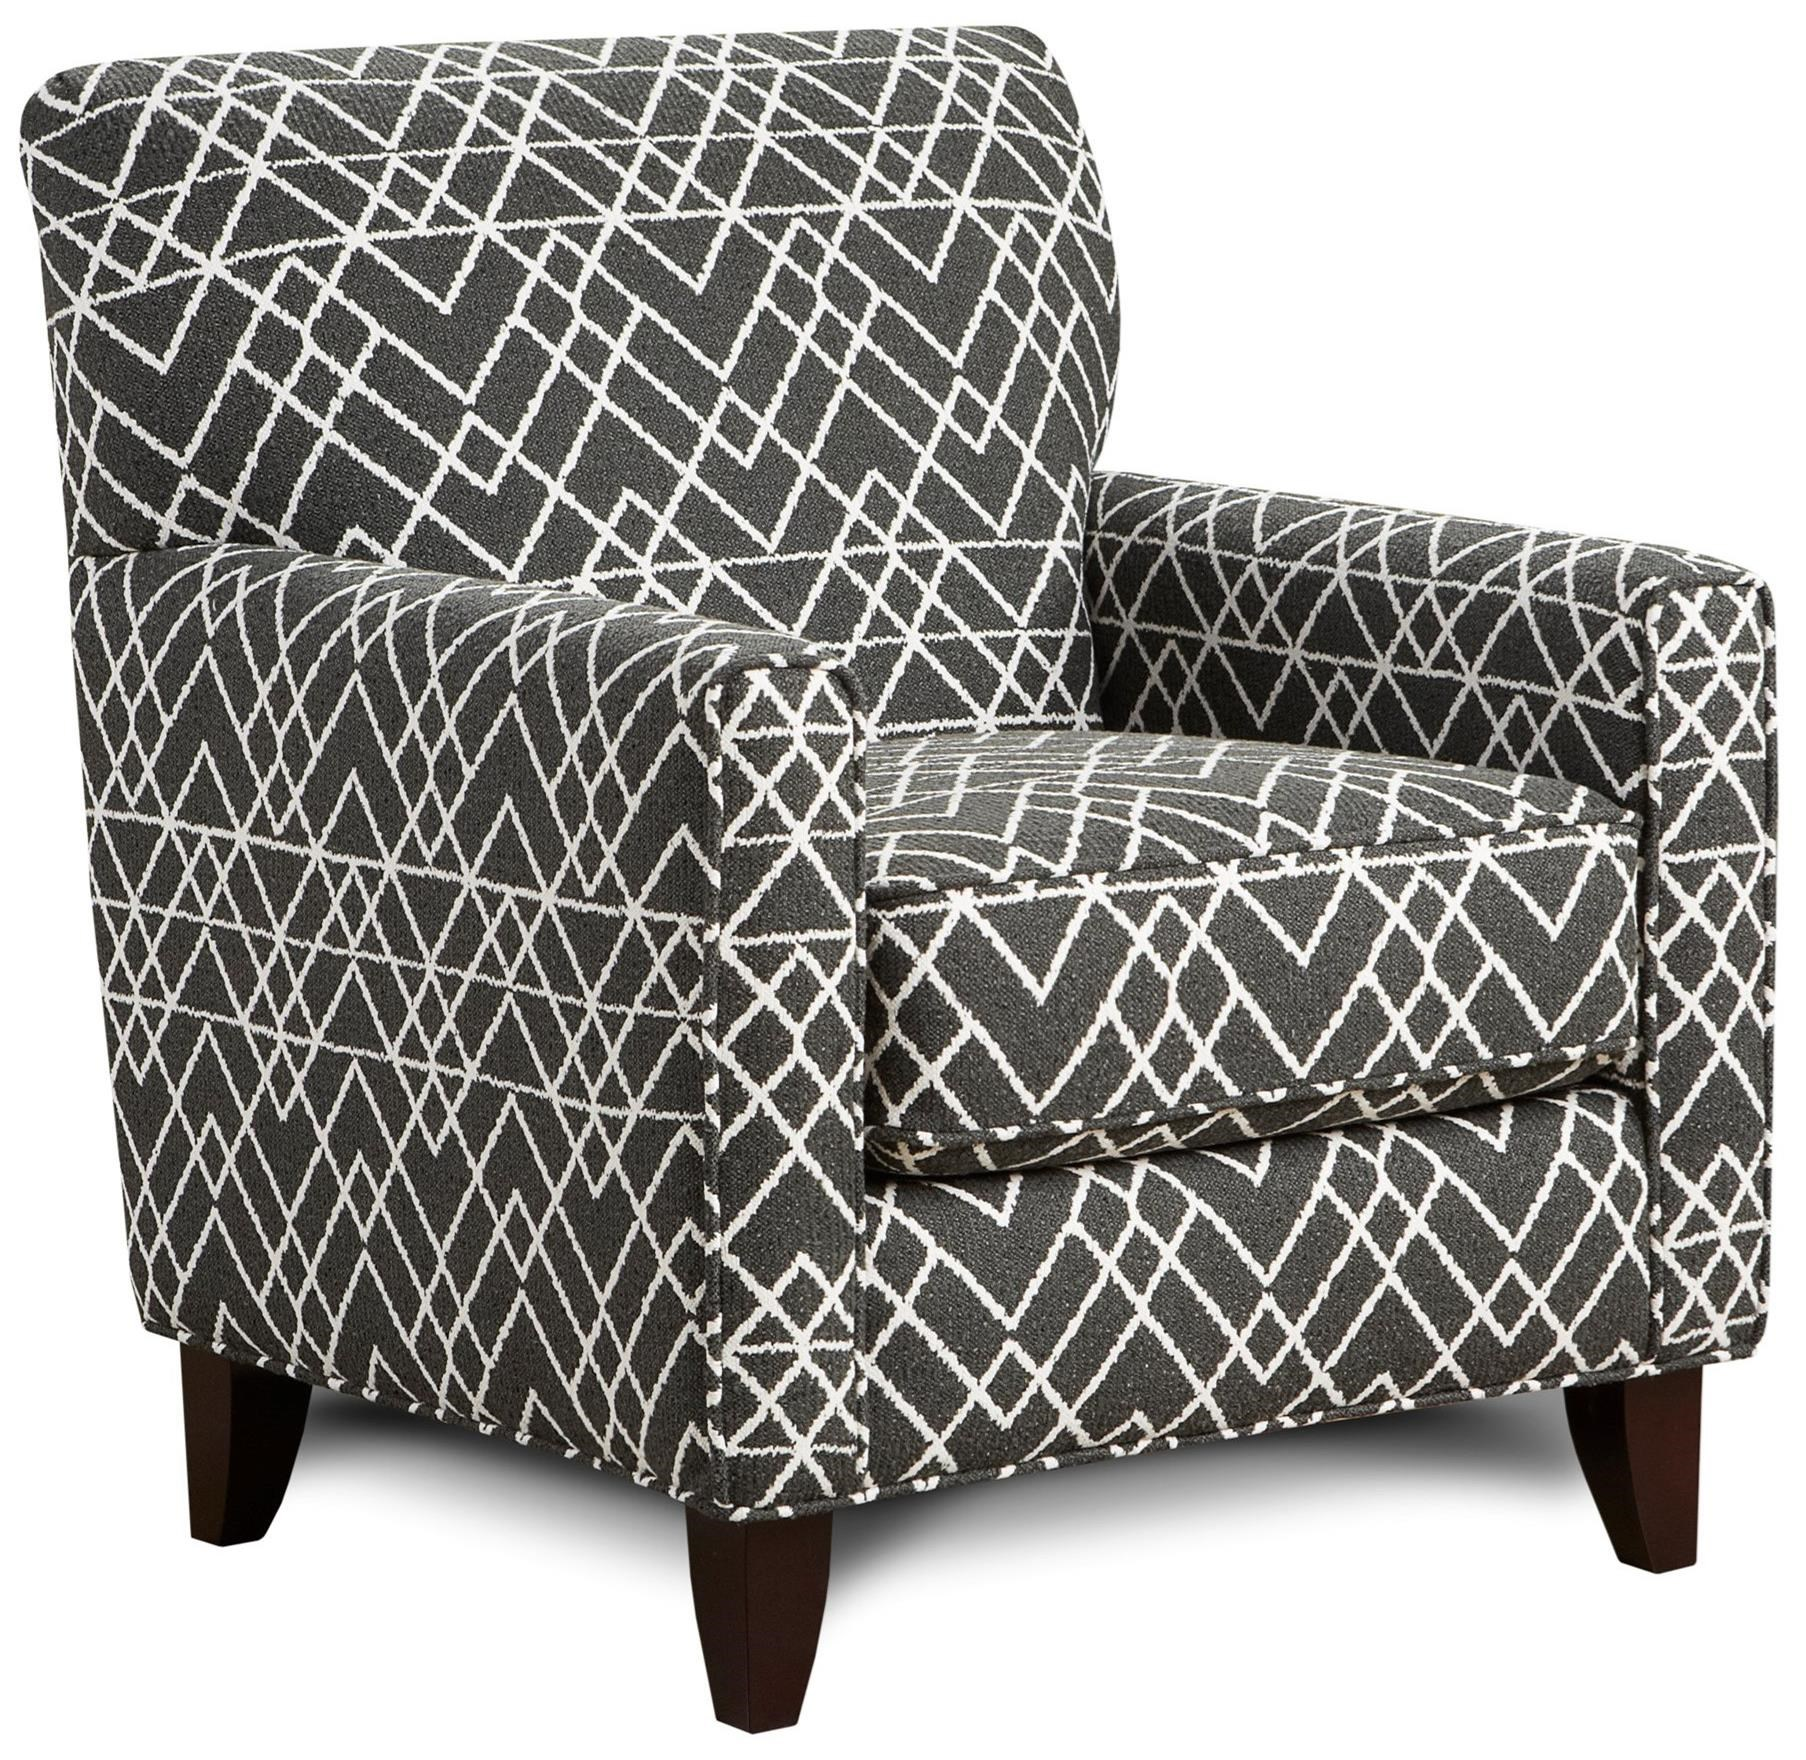 702 Accent Chair by Fusion Furniture at Dean Bosler's